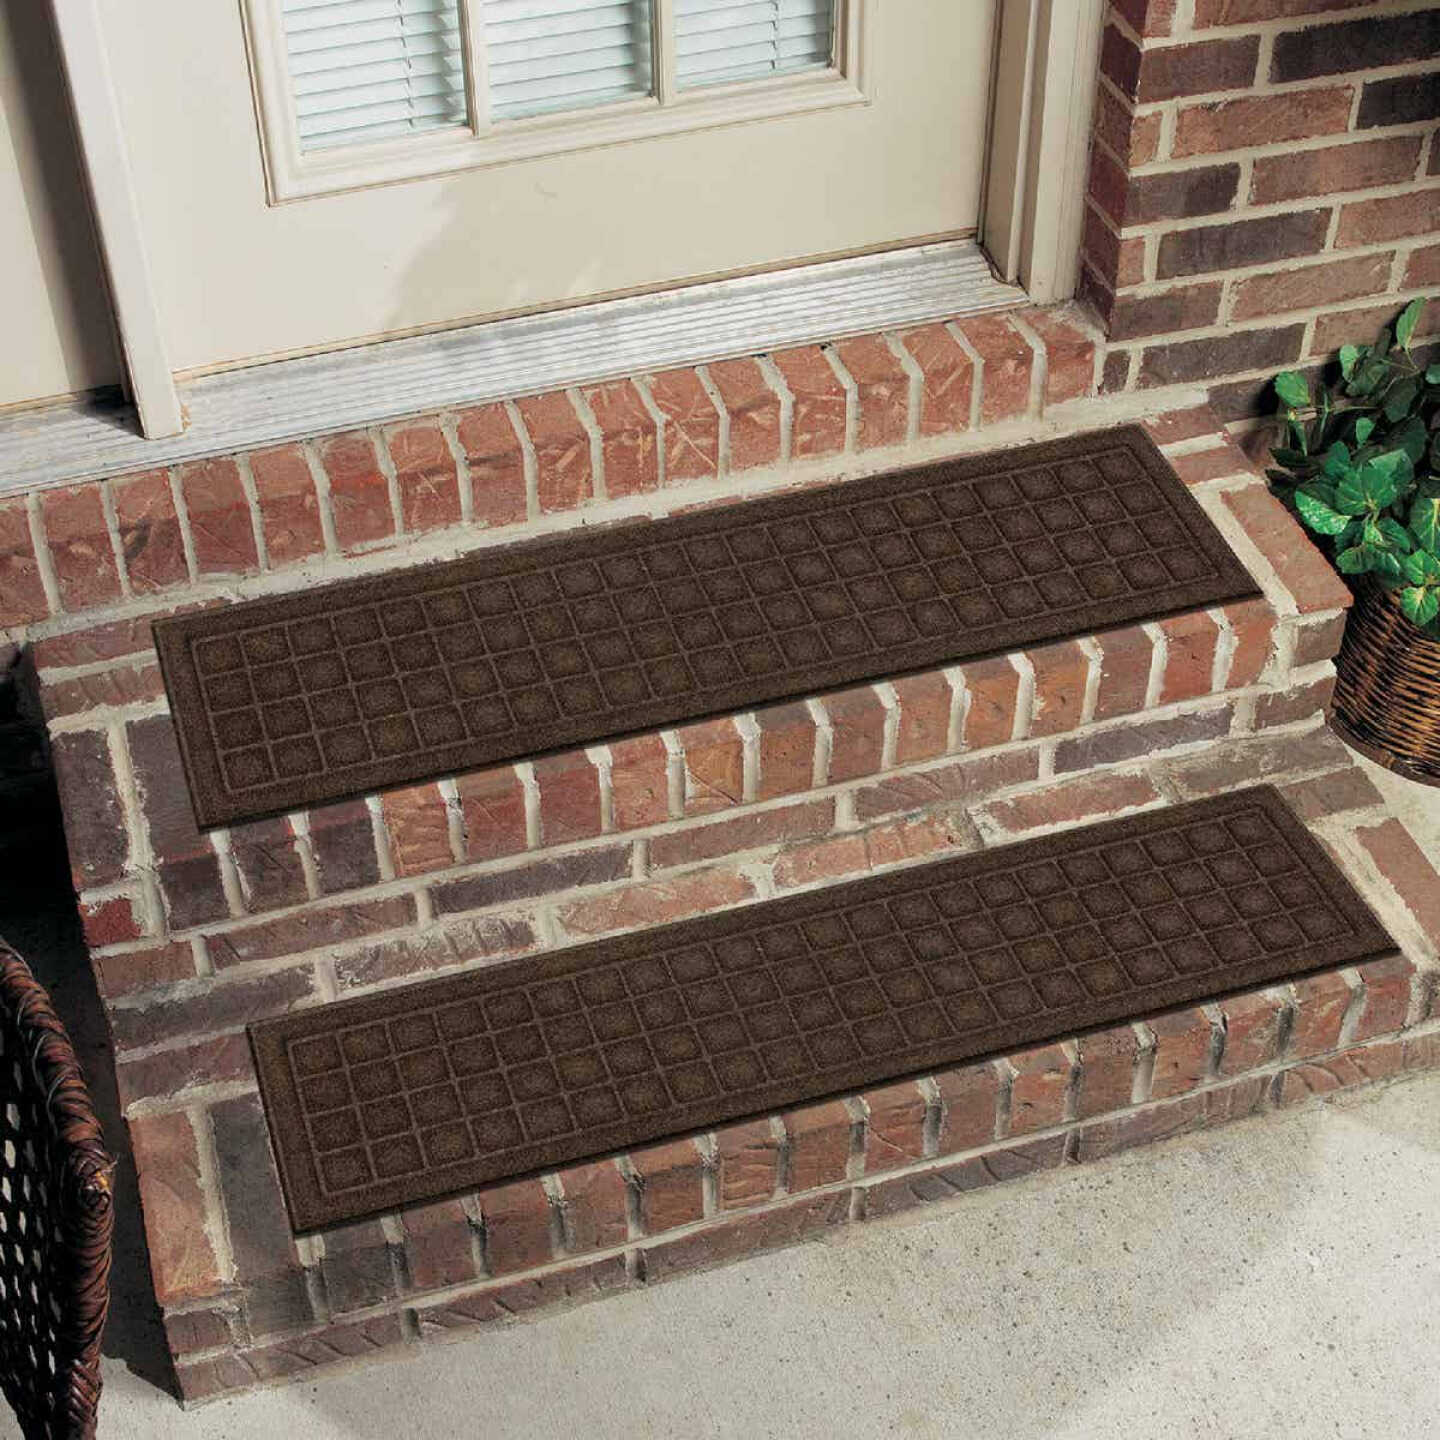 Mohawk Home Square Expressions Black 8 In. x 36 In. Recycled Rubber Stair Tread Image 1